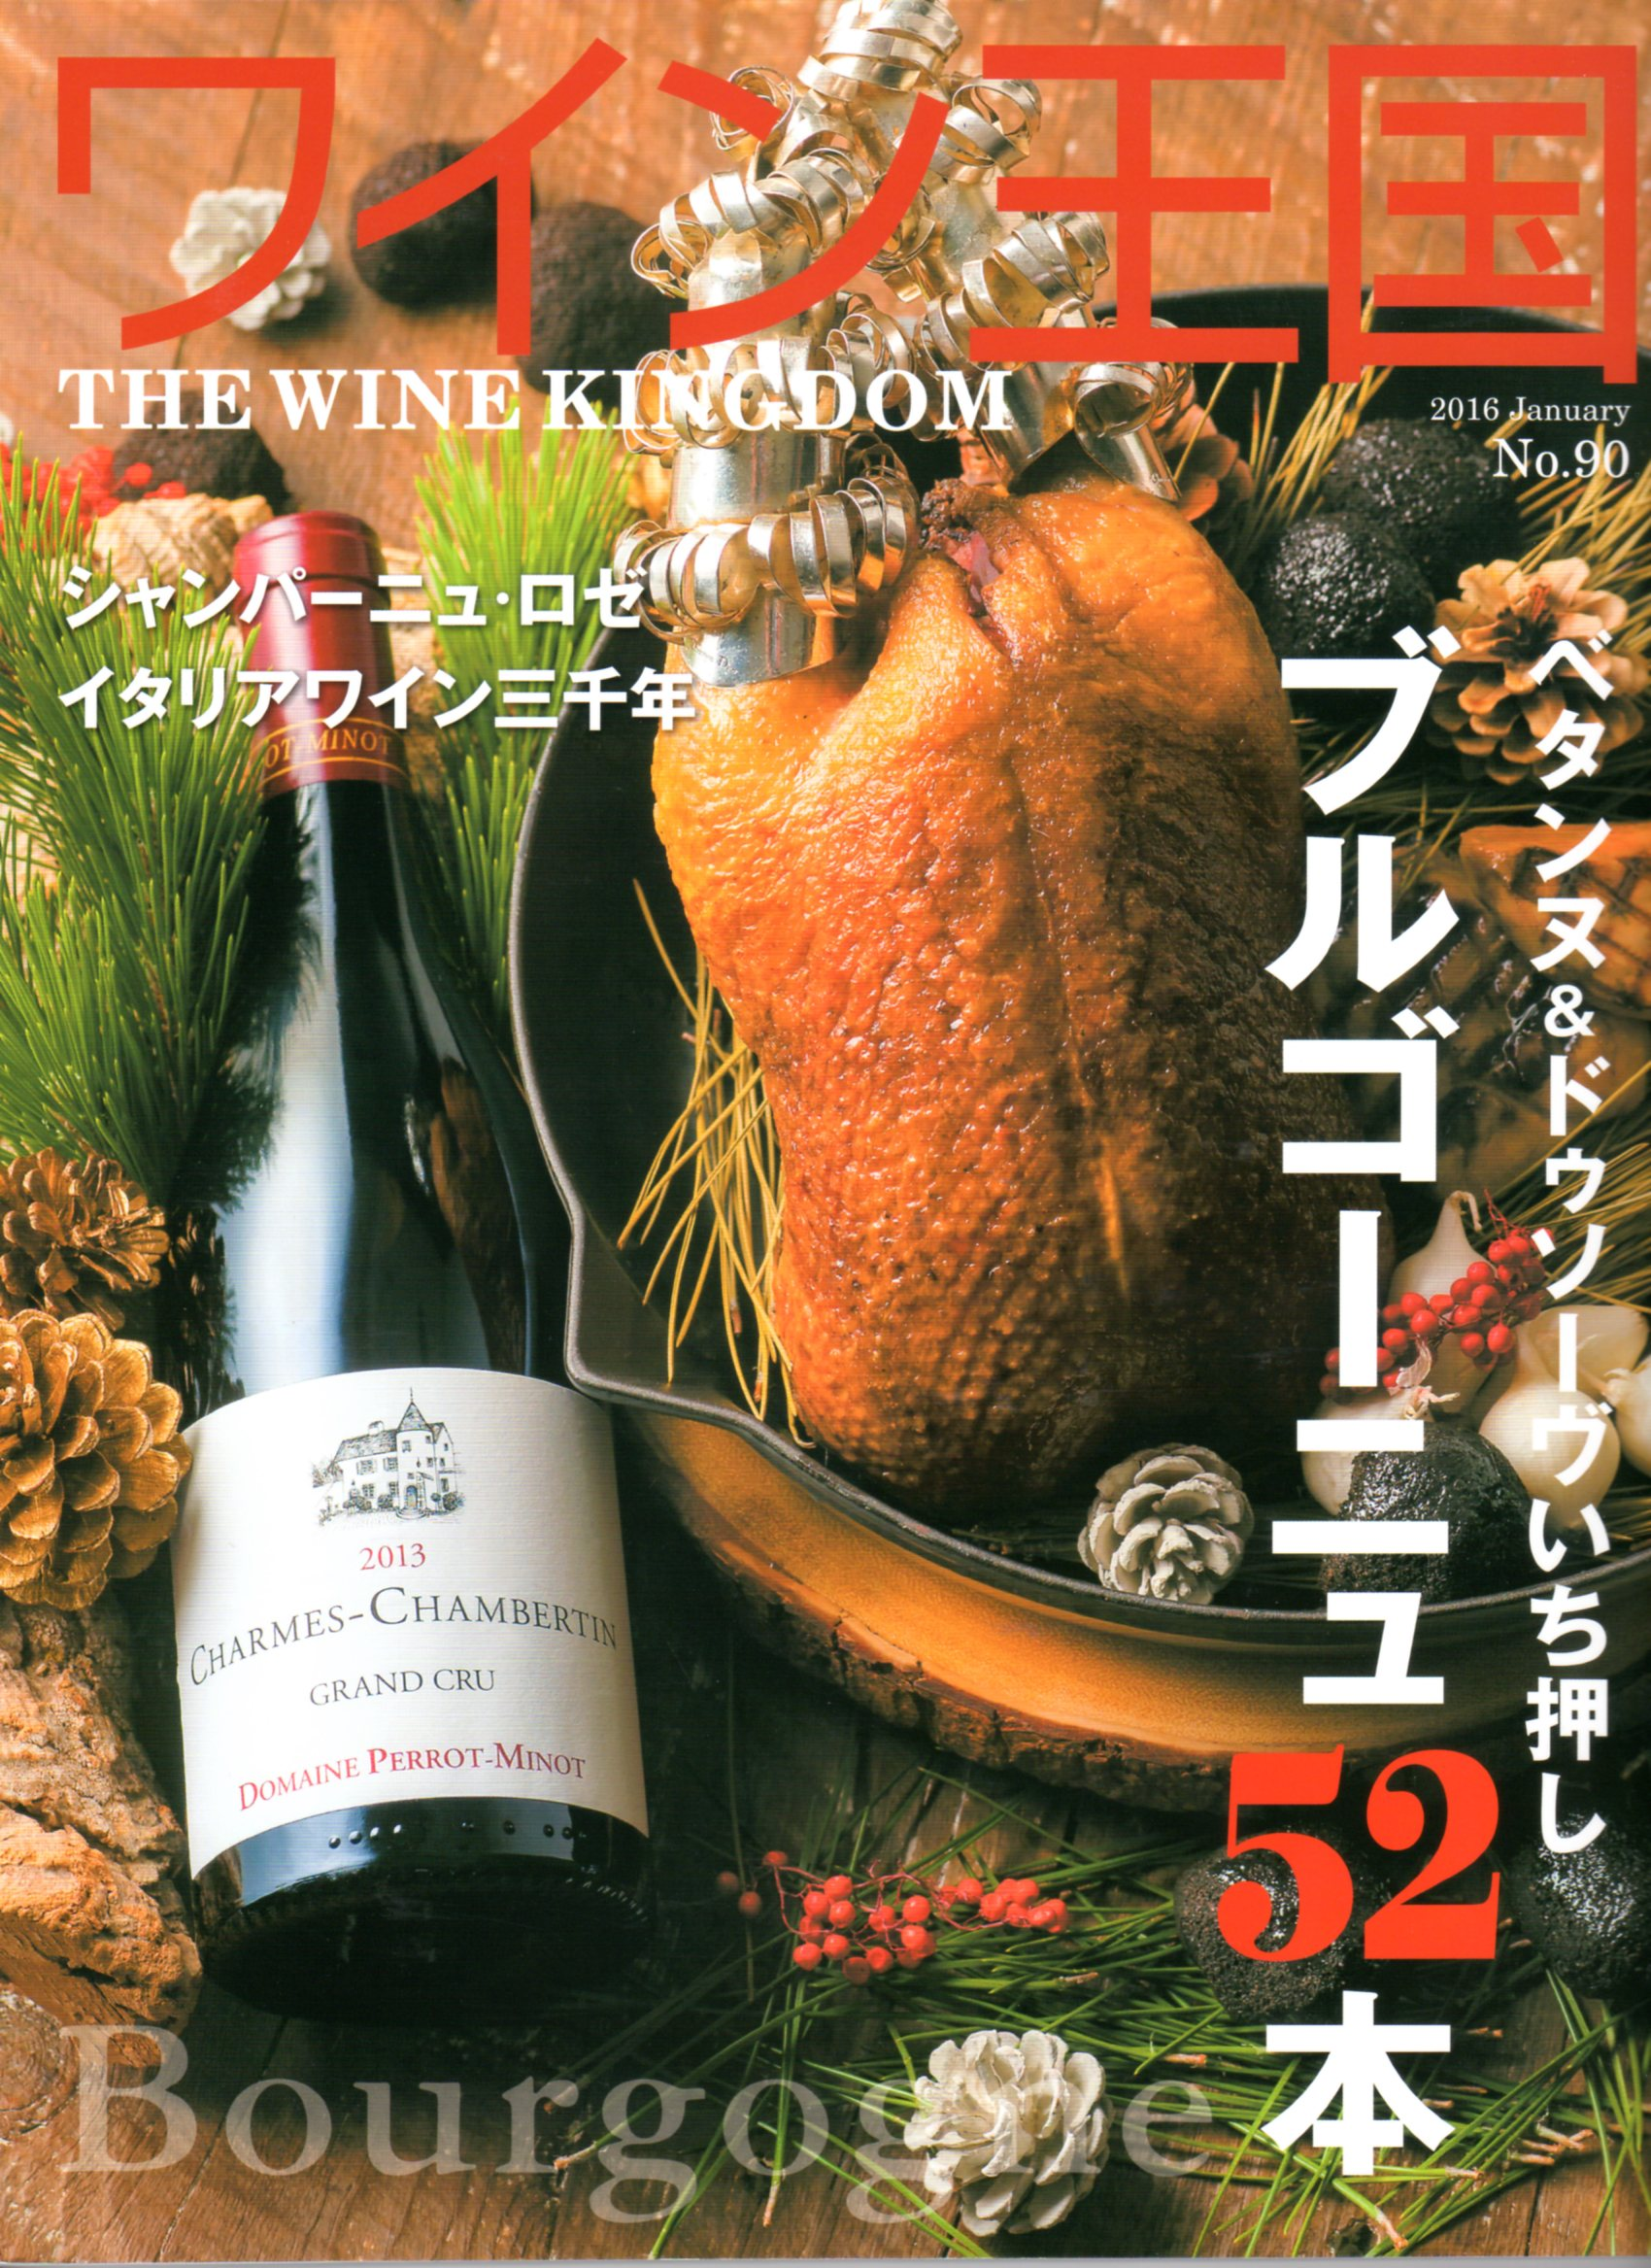 The Wine Kingdom 1